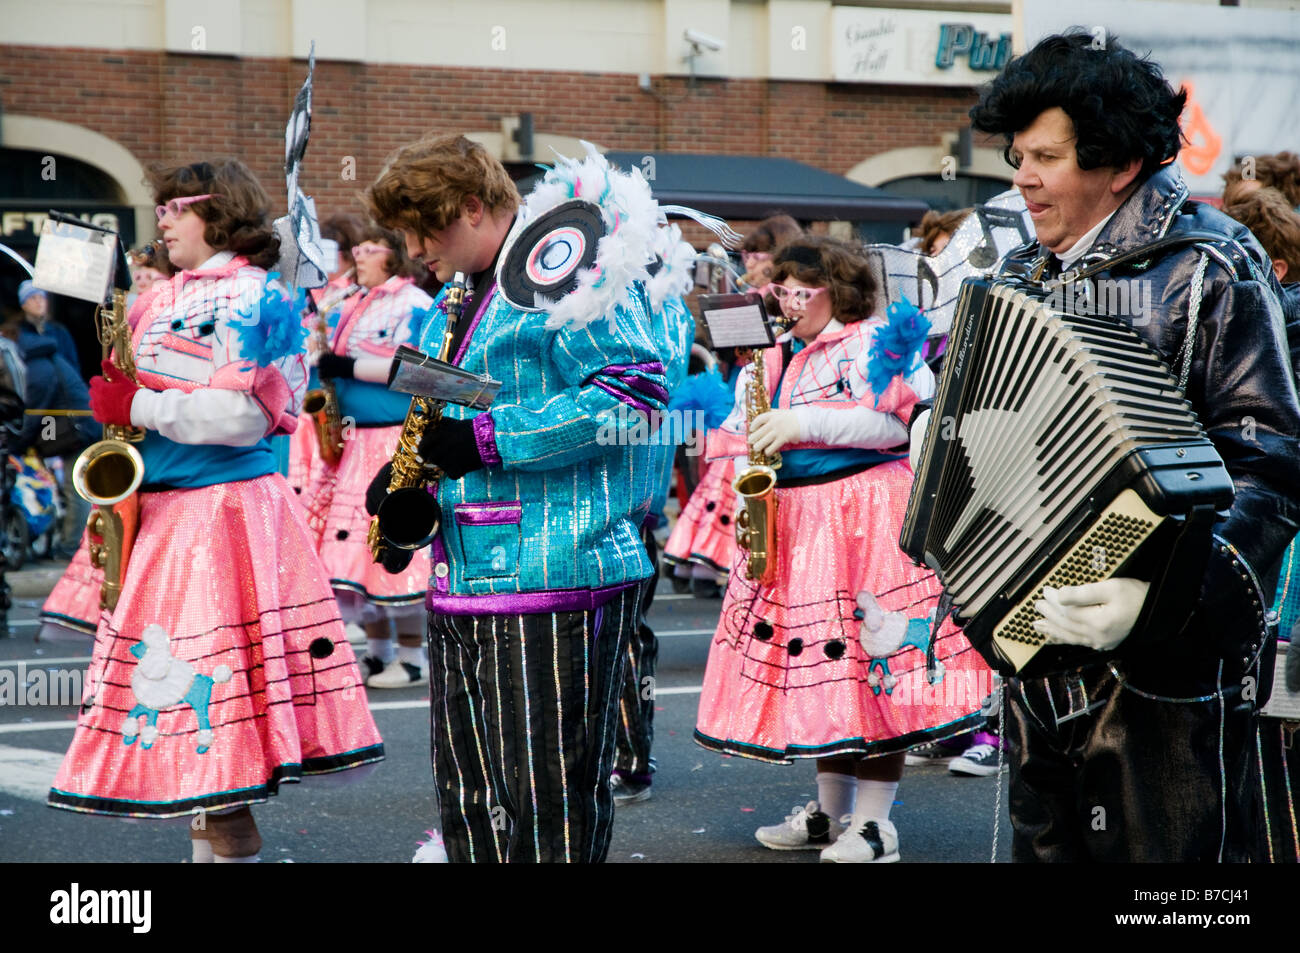 Music band marching at the annual Mummers parade in Philadelphia - Stock Image